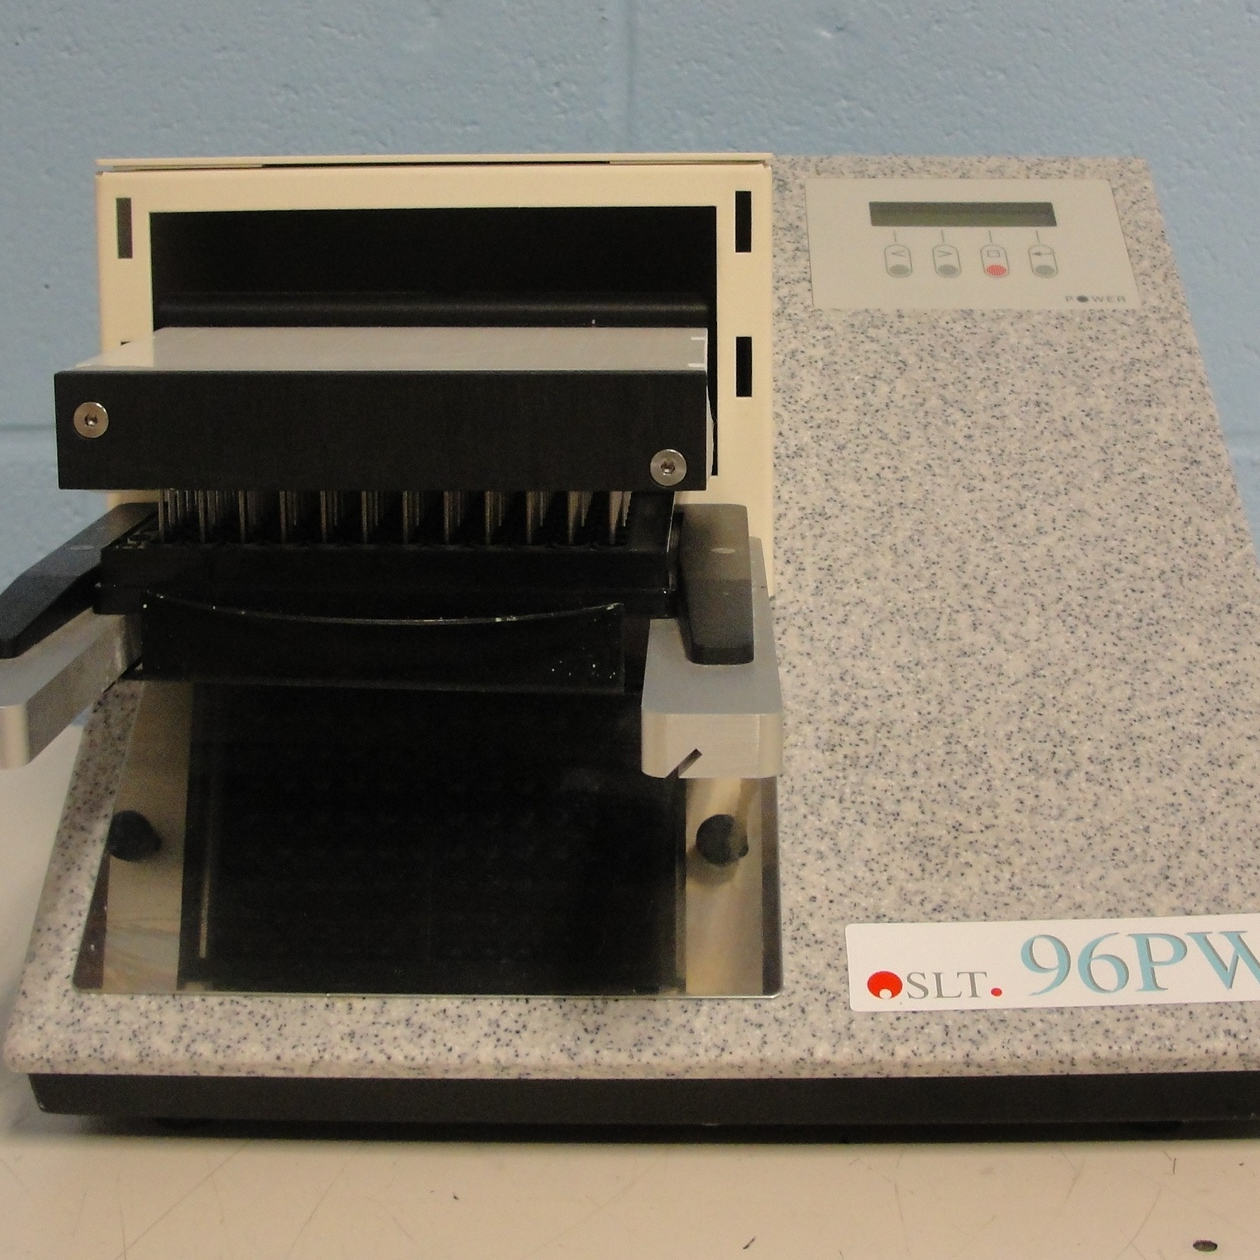 96PW Microplate Washer